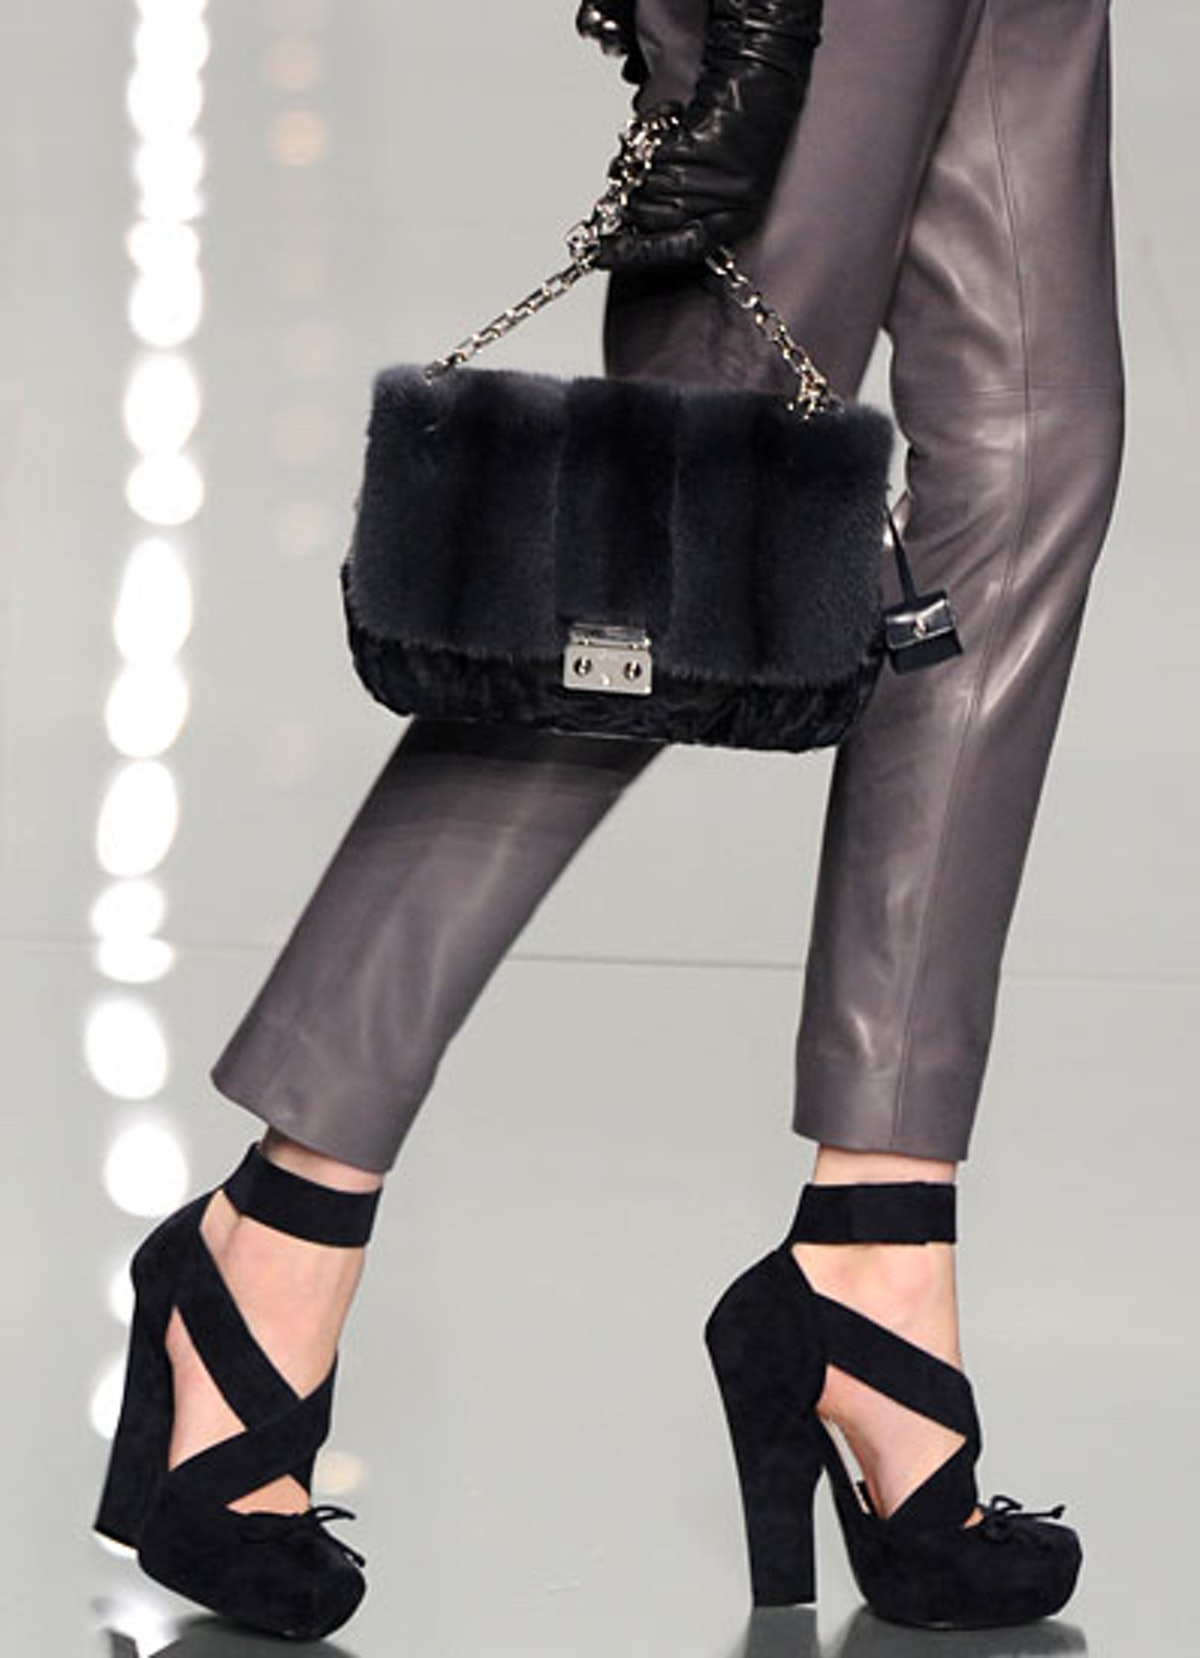 acss-fall-2012-accessories-roundup-14-v.jpg